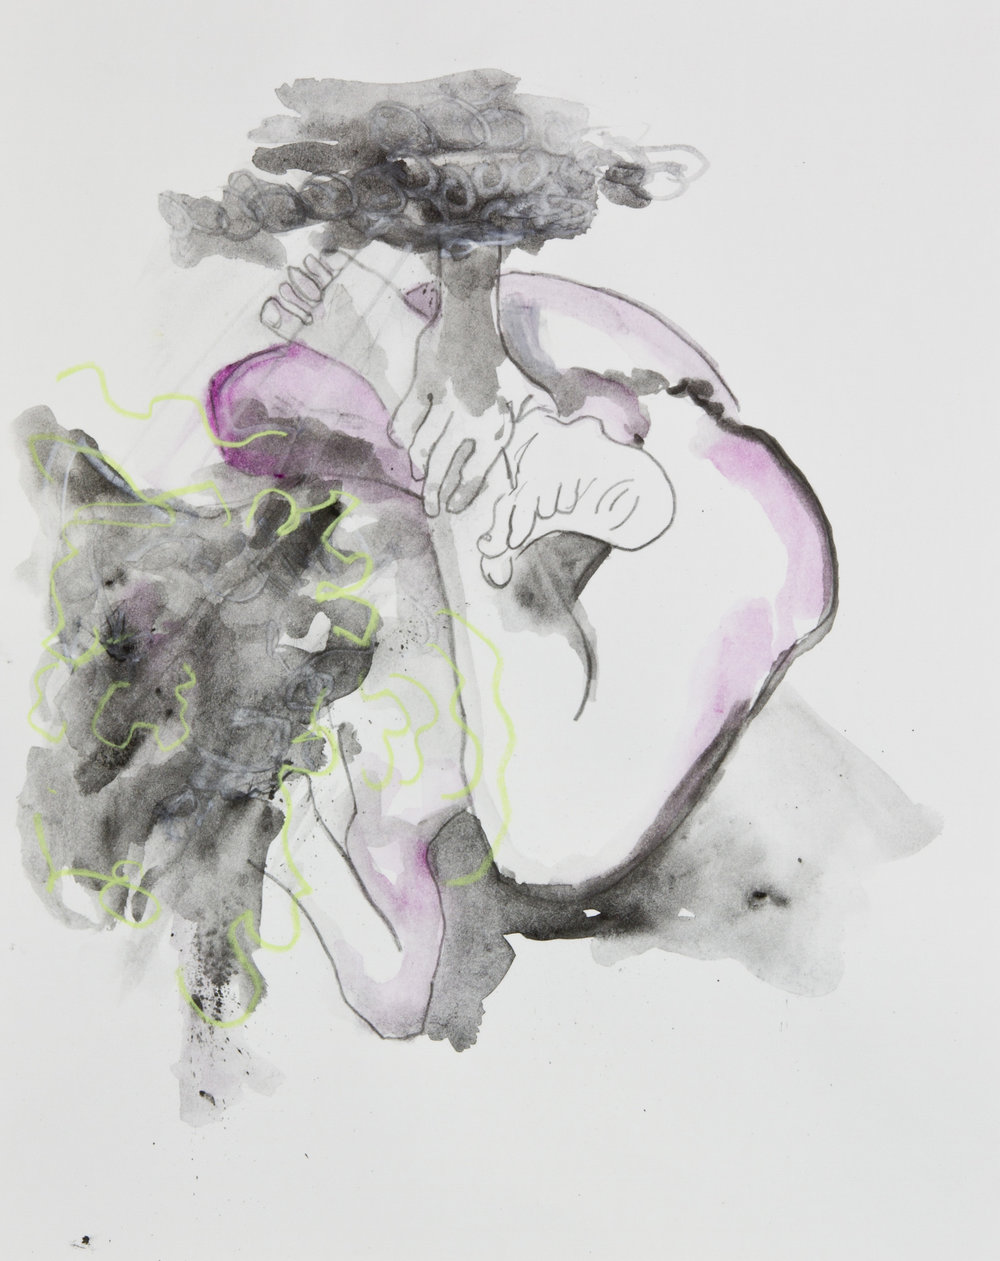 Unconscious Creation, 2013, graphite, crayon and watercolor pencil on paper, 11x14 inches